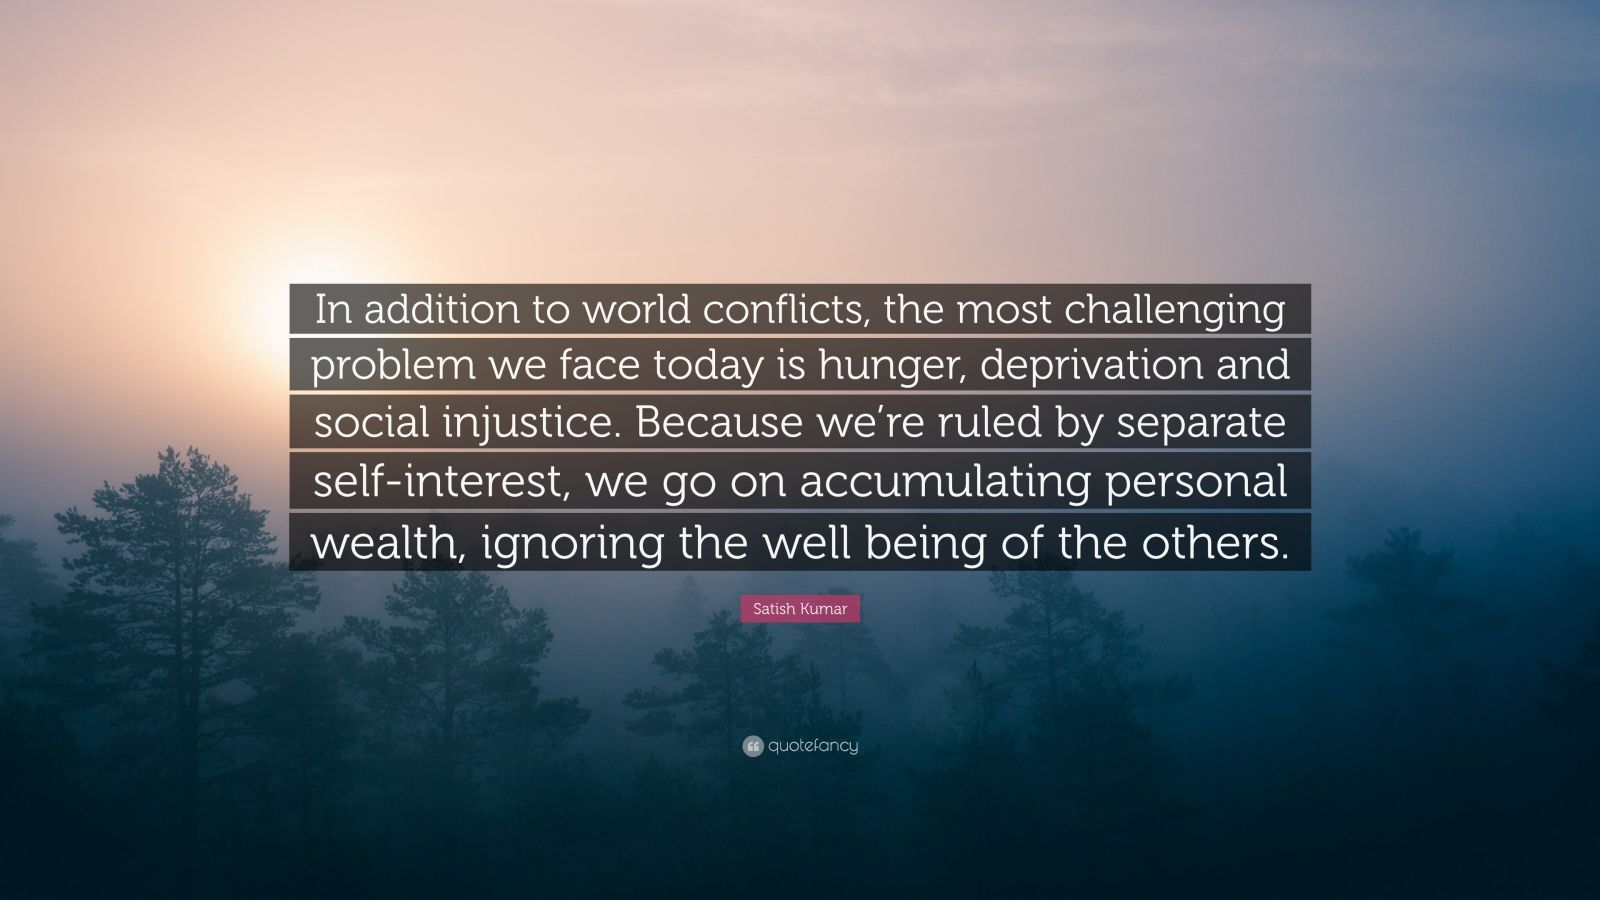 """Satish Kumar Quote: """"In addition to world conflicts, the most challenging problem we face today is hunger, deprivation and social injustice. Because we're ruled by separate self-interest, we go on accumulating personal wealth, ignoring the well being of the others."""""""